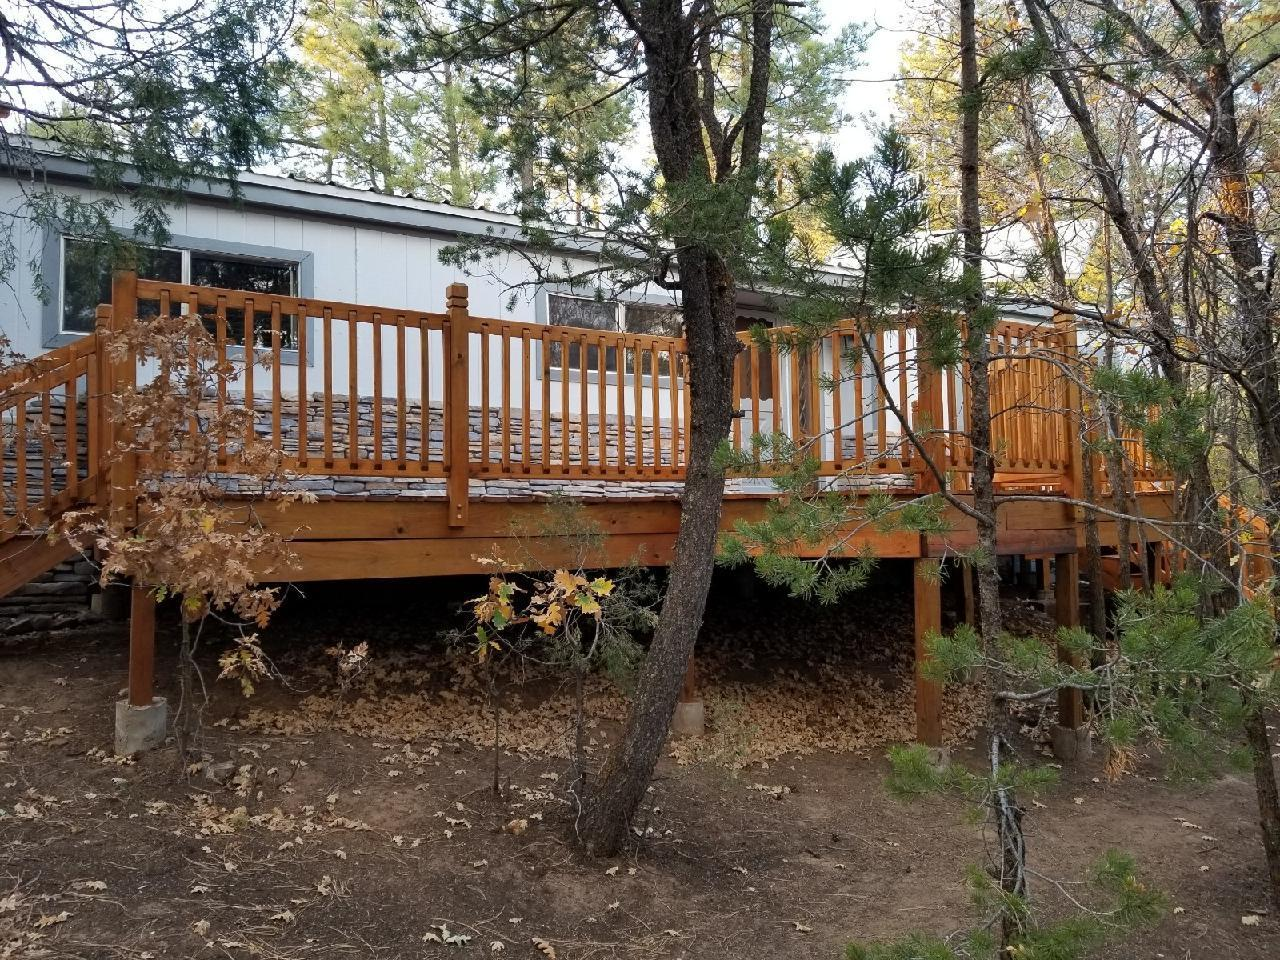 Move in Ready. Much TLC in preparation for new owner. Paved access to Private, Peaceful, Pleasant Home treed Property!